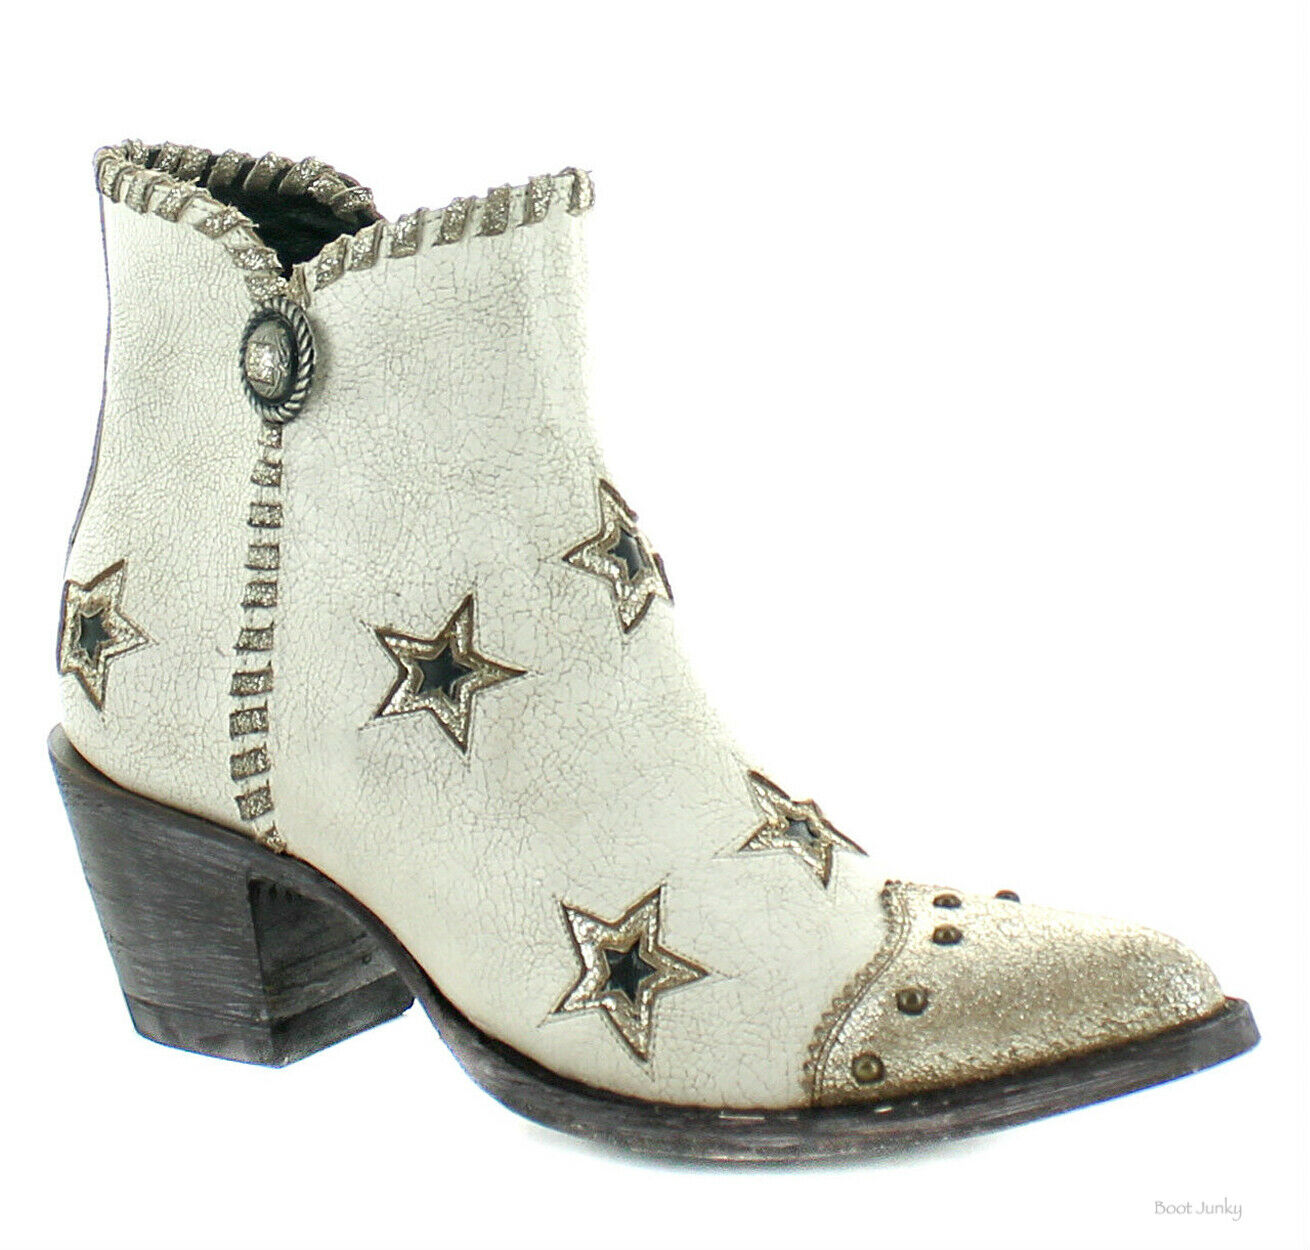 YBL357-1 OLD GRINGO YIPPEE GLAMIS CRACKLED MILK gold STAR BOOTS